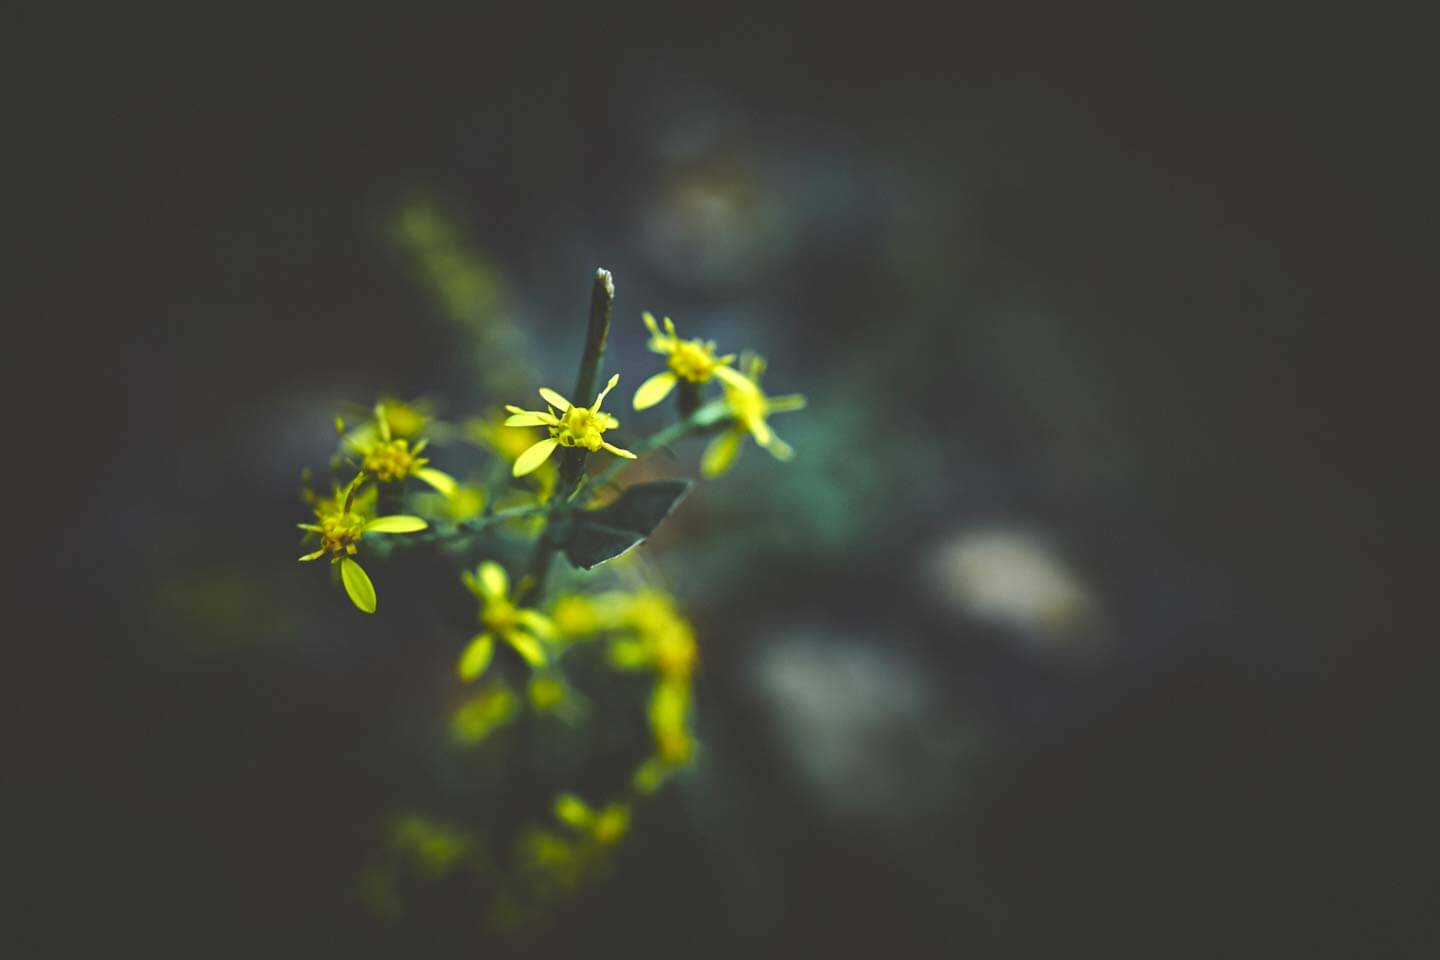 yellow-flowers-travel-photographer-marcus-lewis-40-percent-tiny-png